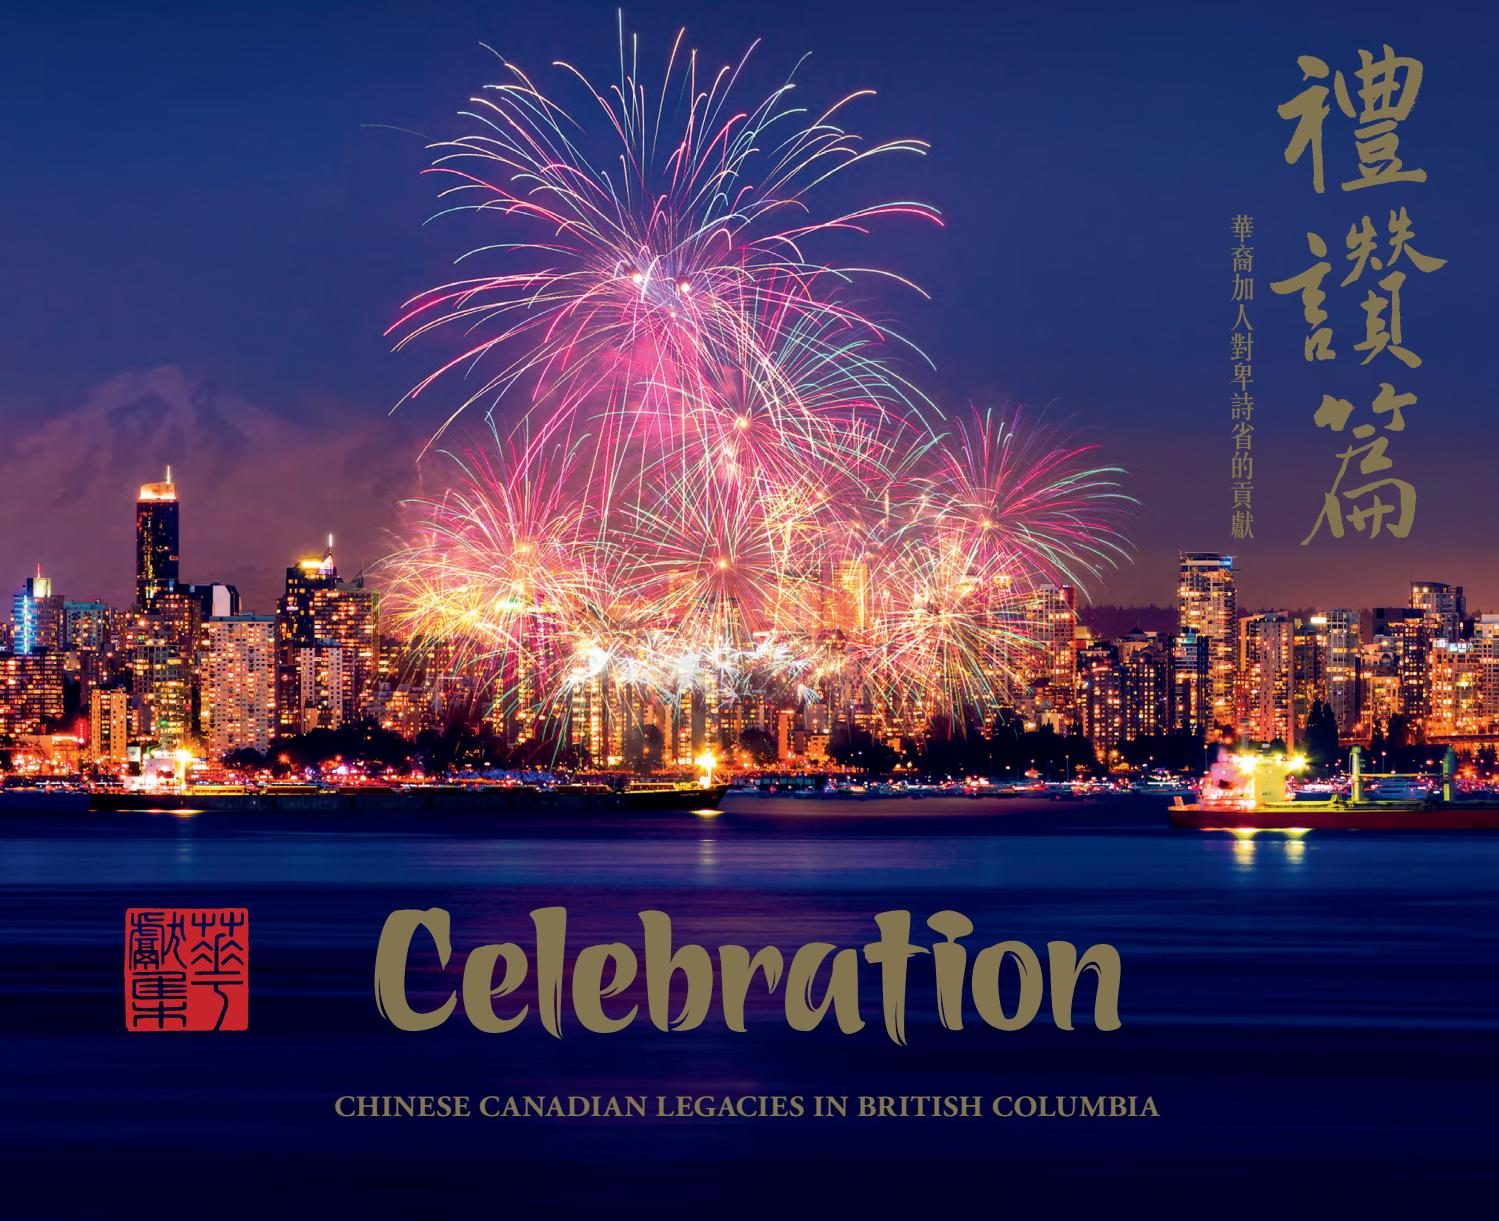 Celebration: Chinese Canadian Legacies in British Columbia by